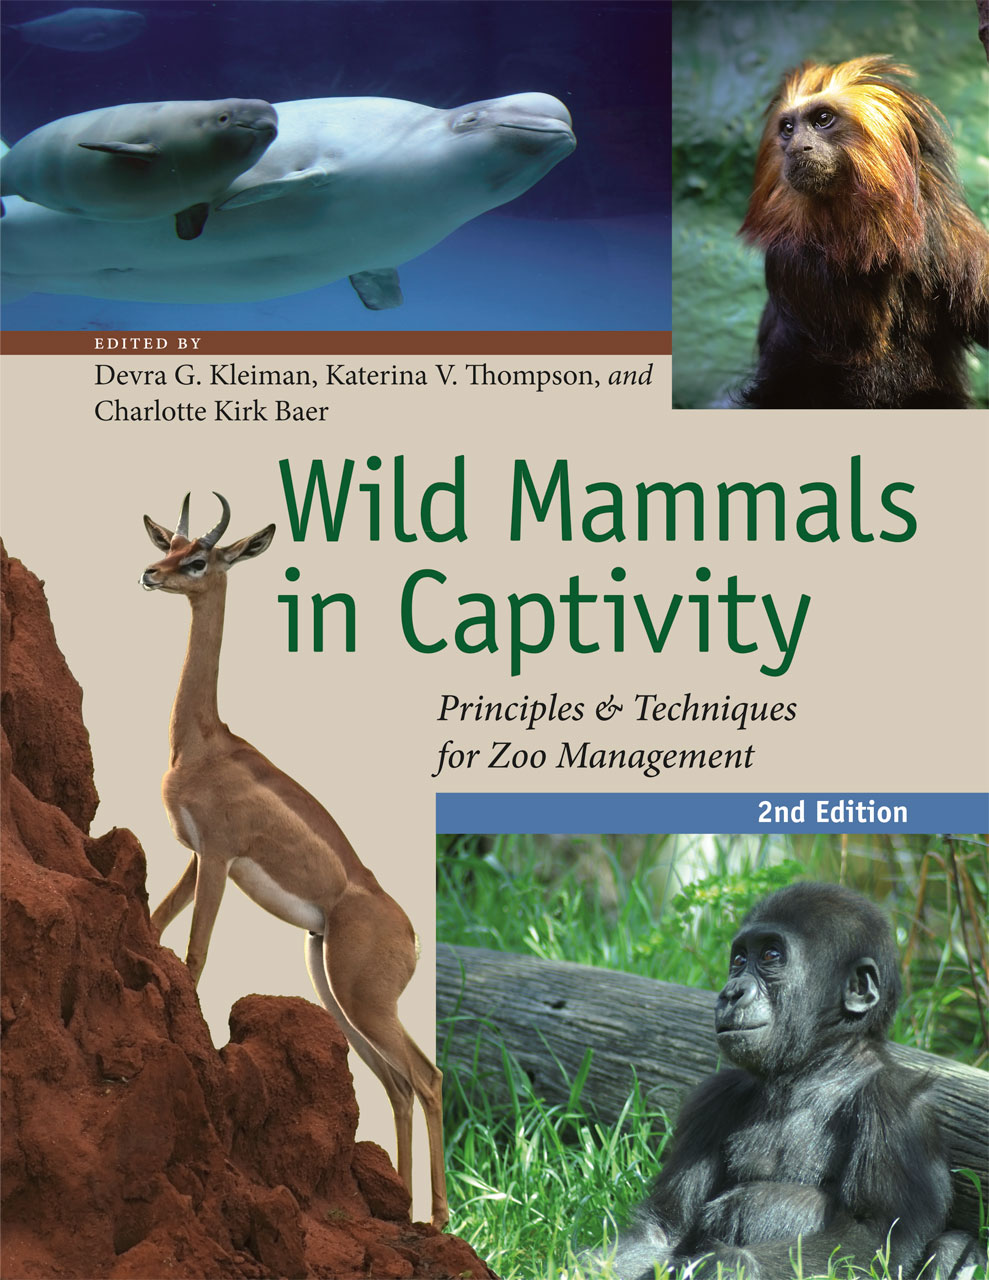 Wild Mammals in Captivity: Principles & Techniques for Zoo Management (2nd Edition)